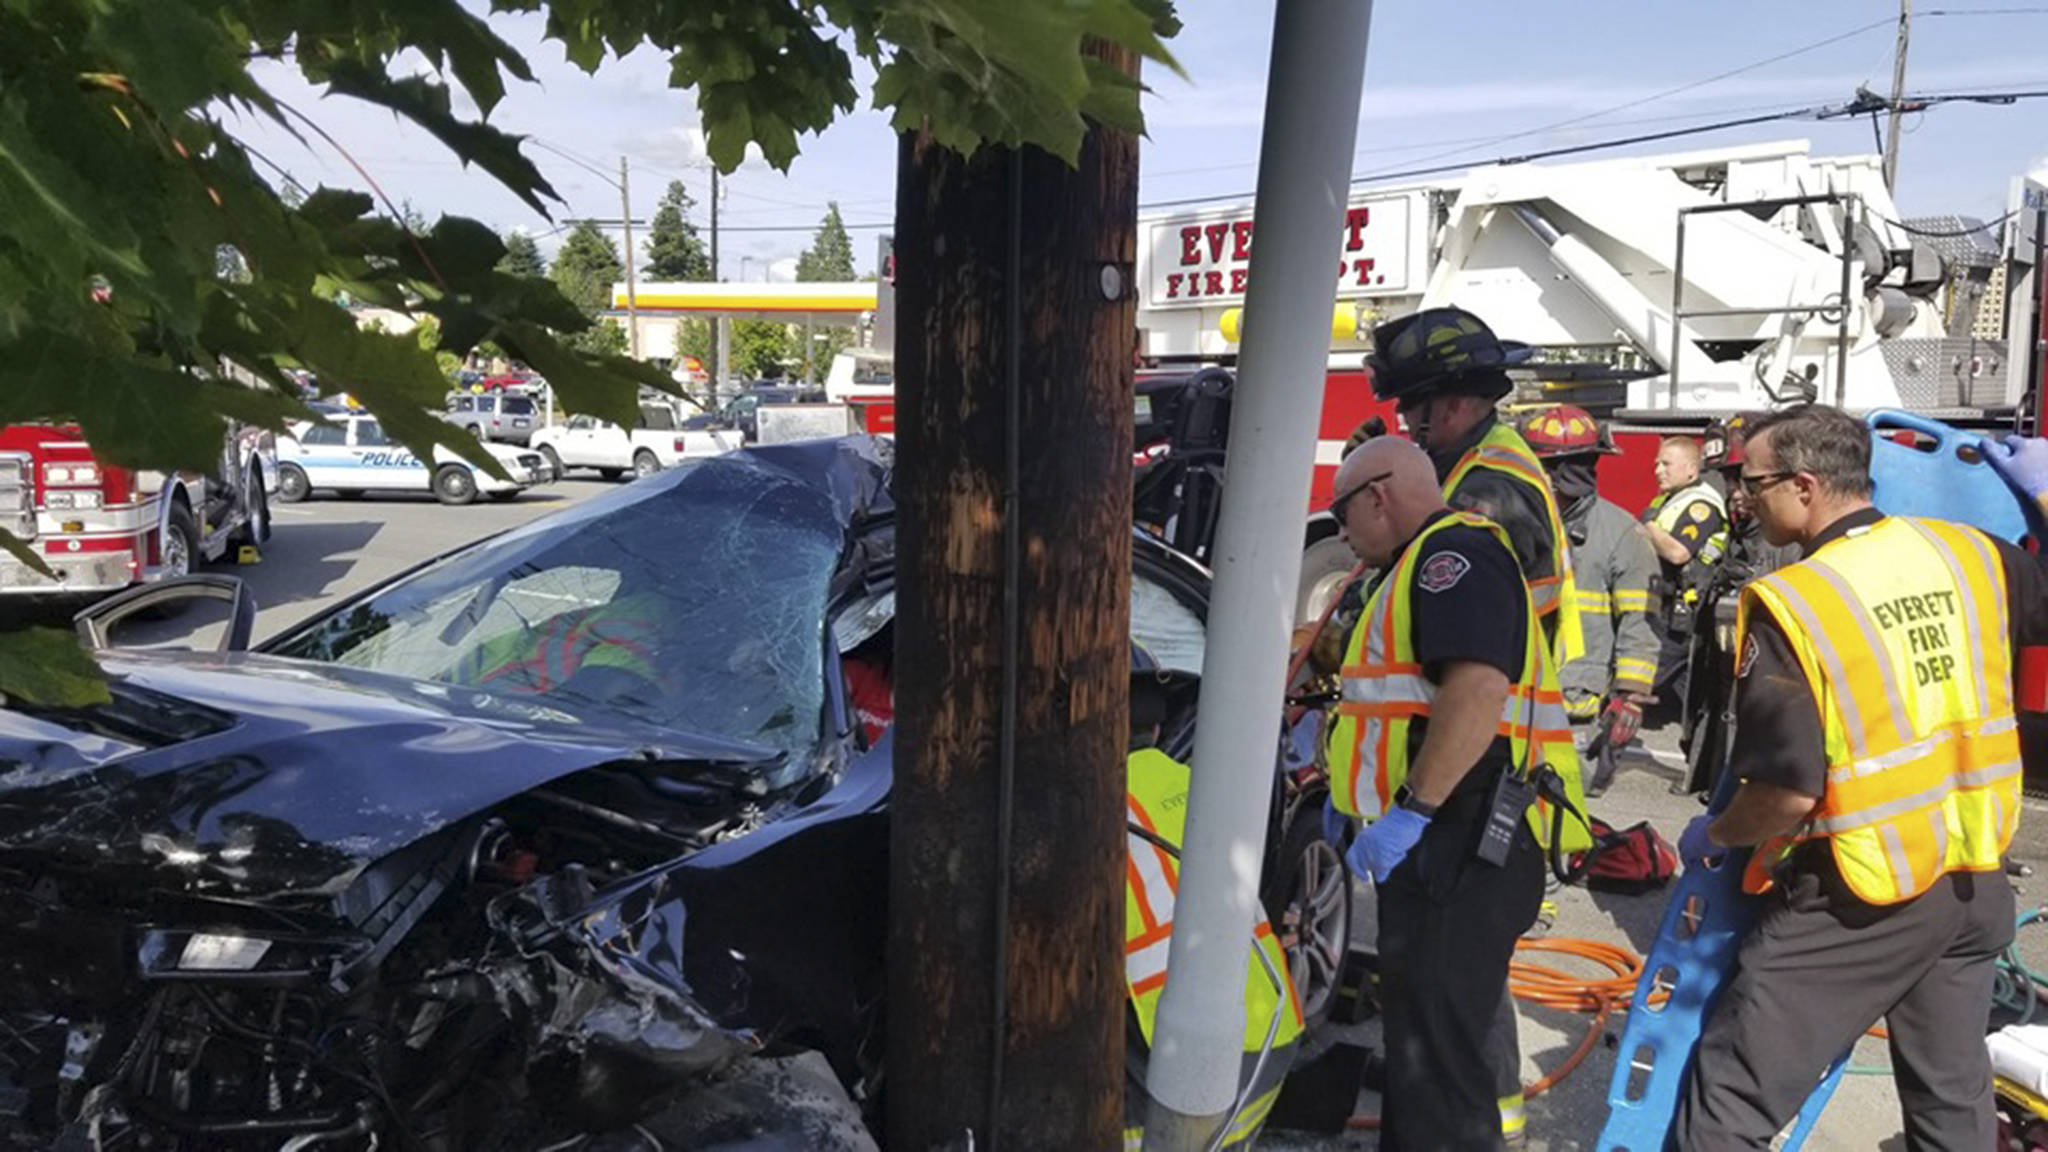 Two people were seriously injured after a multiple-car collision on Evergreen Way. (Everett Fire)